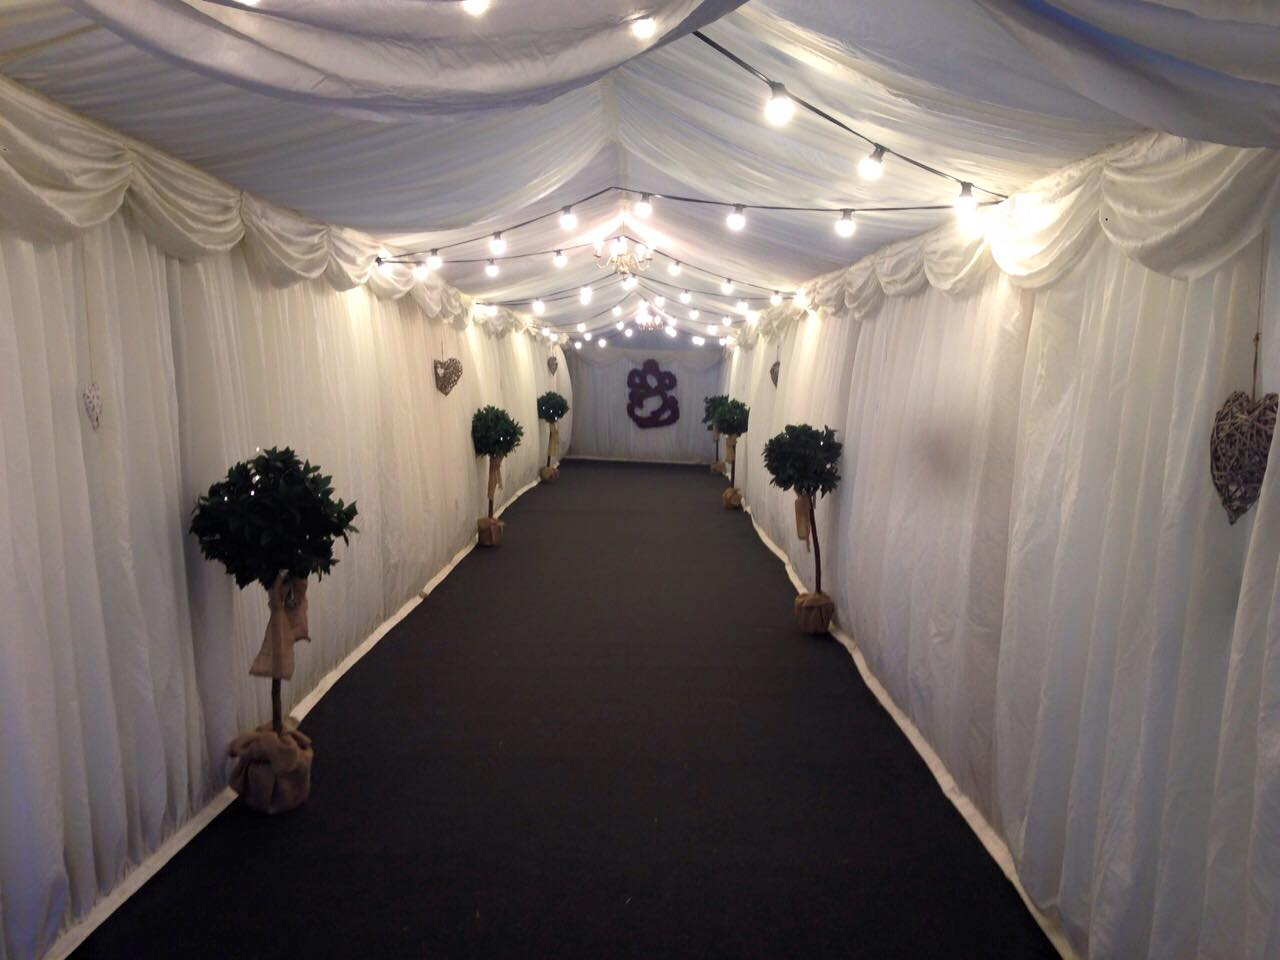 London Wedding Marquee Hire Entrance ... & Start of The Big Fat Indian Wedding - Marquee by Bees Marquees ...